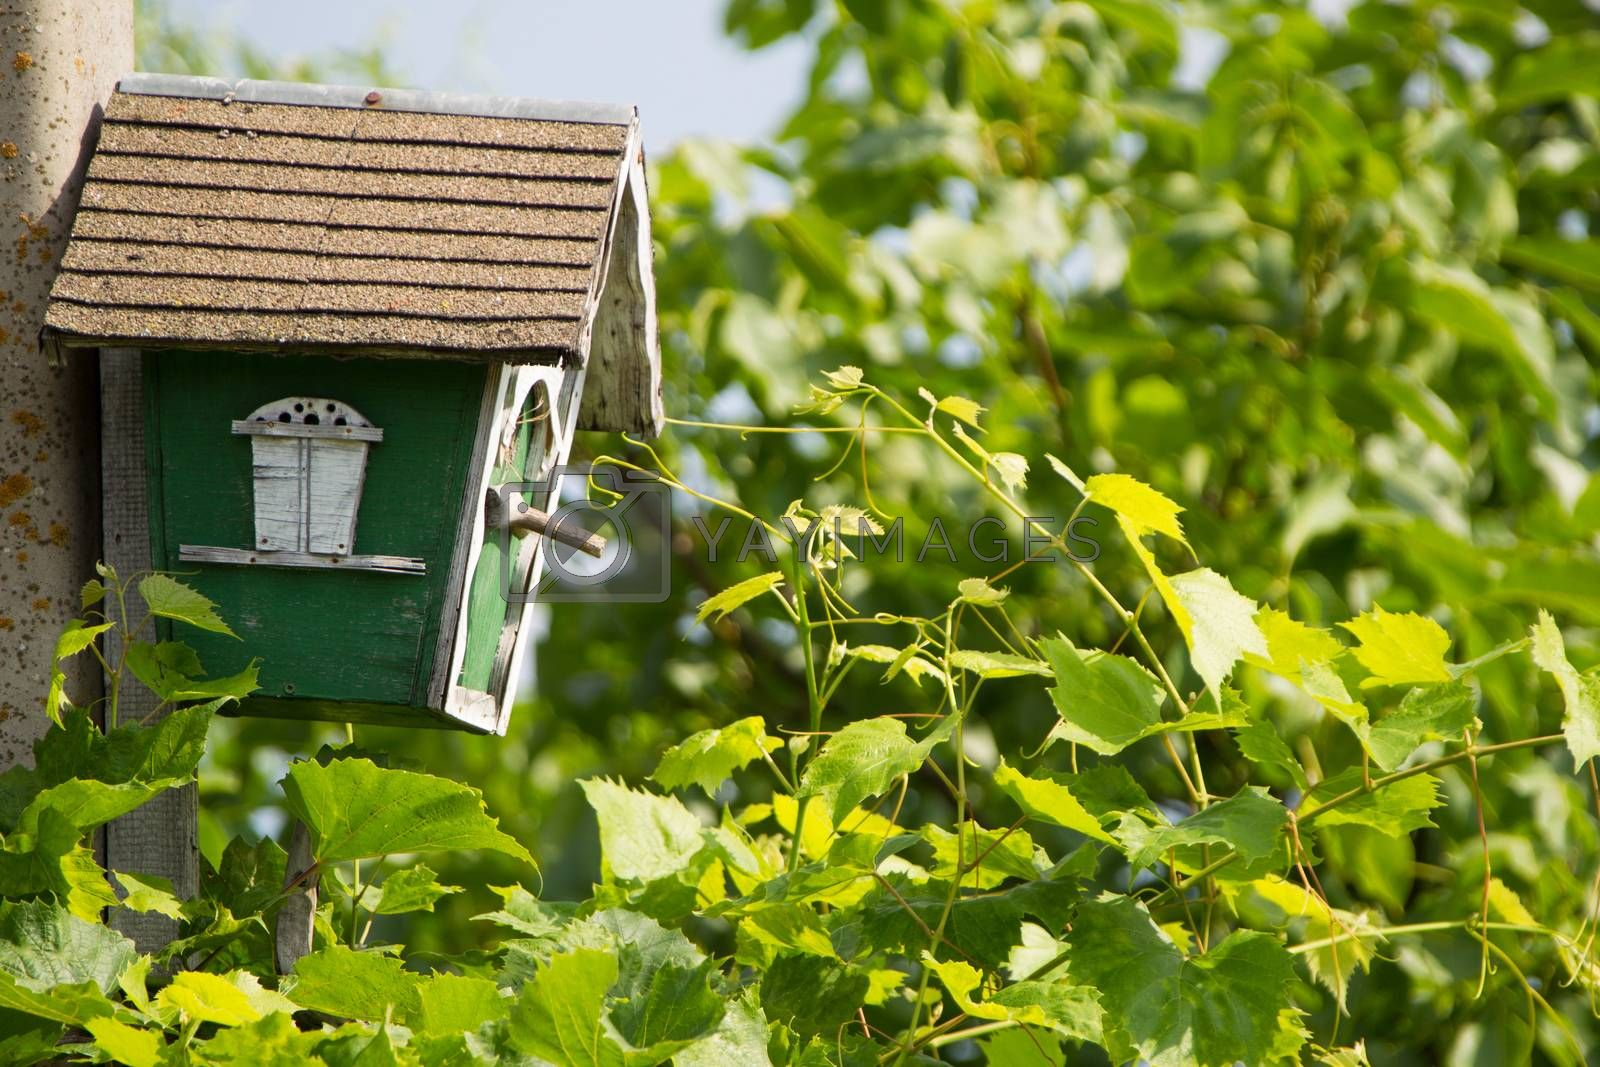 A birdhouse in the green leaves.House for birds. The bird house. The self-made birdhouse